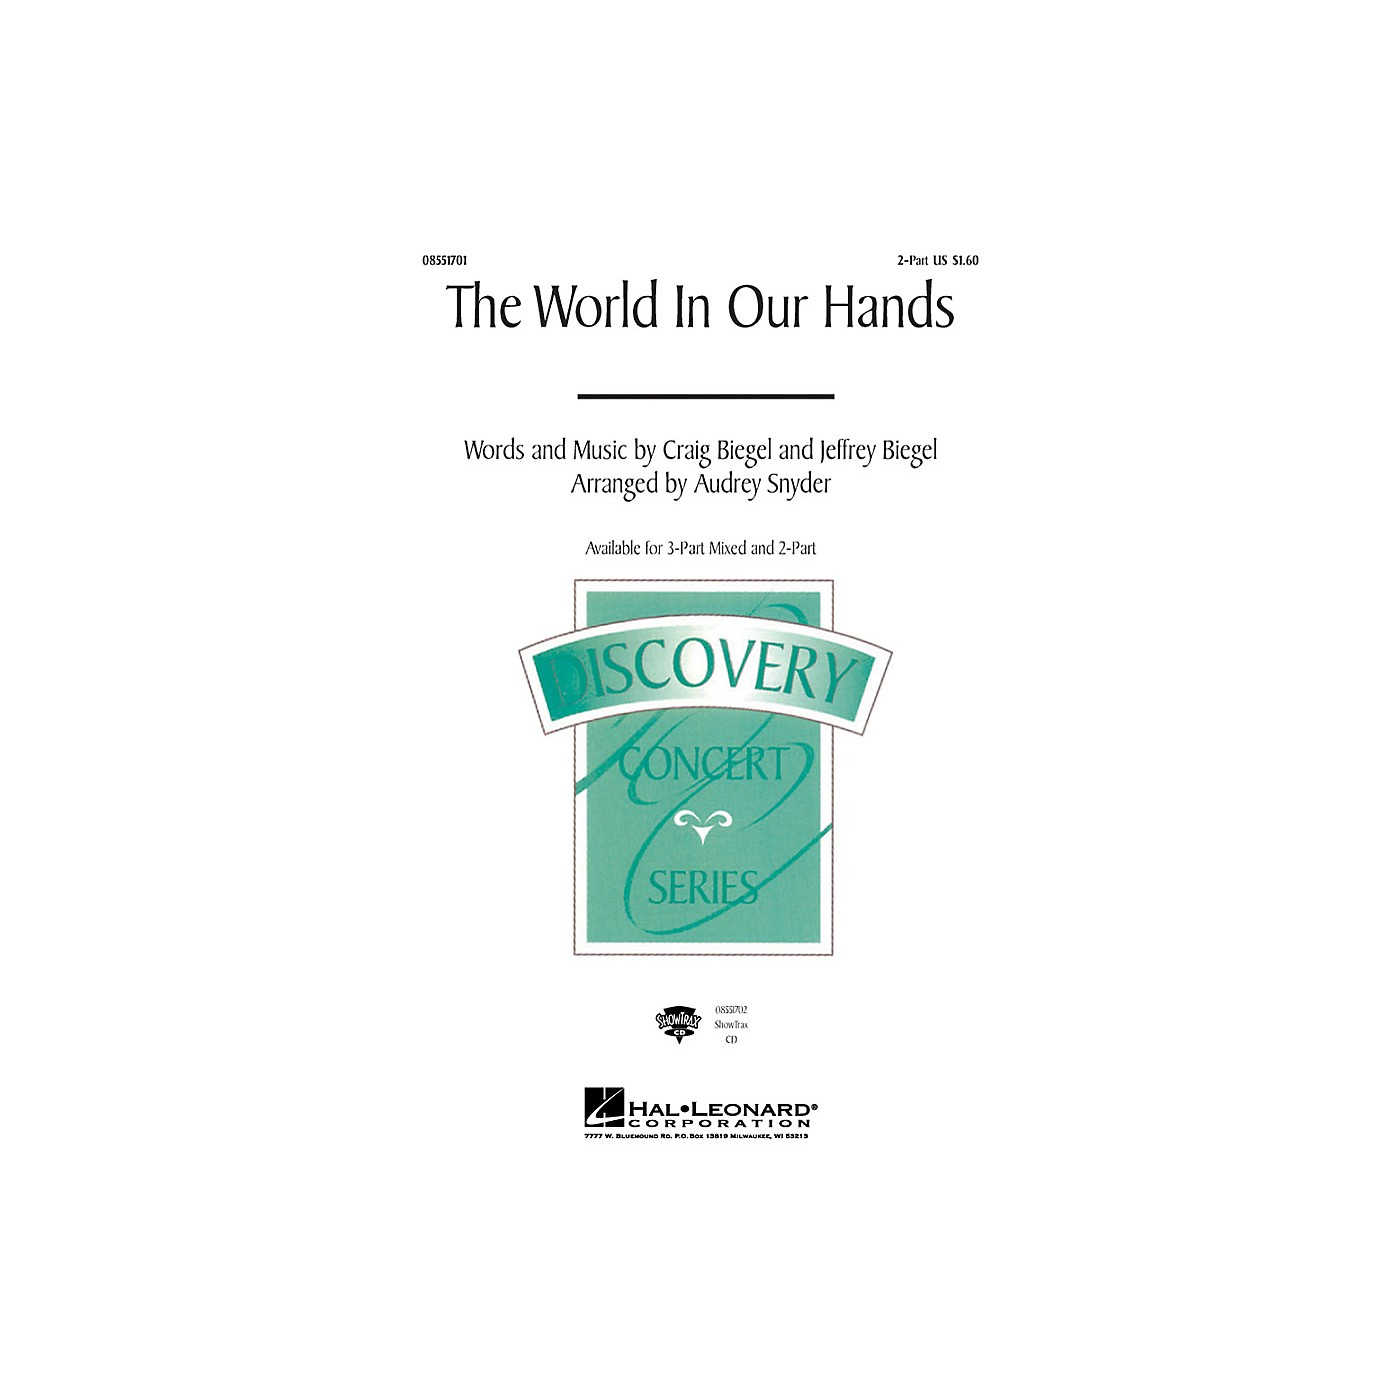 Hal Leonard The World in Our Hands 2-Part arranged by Audrey Snyder thumbnail